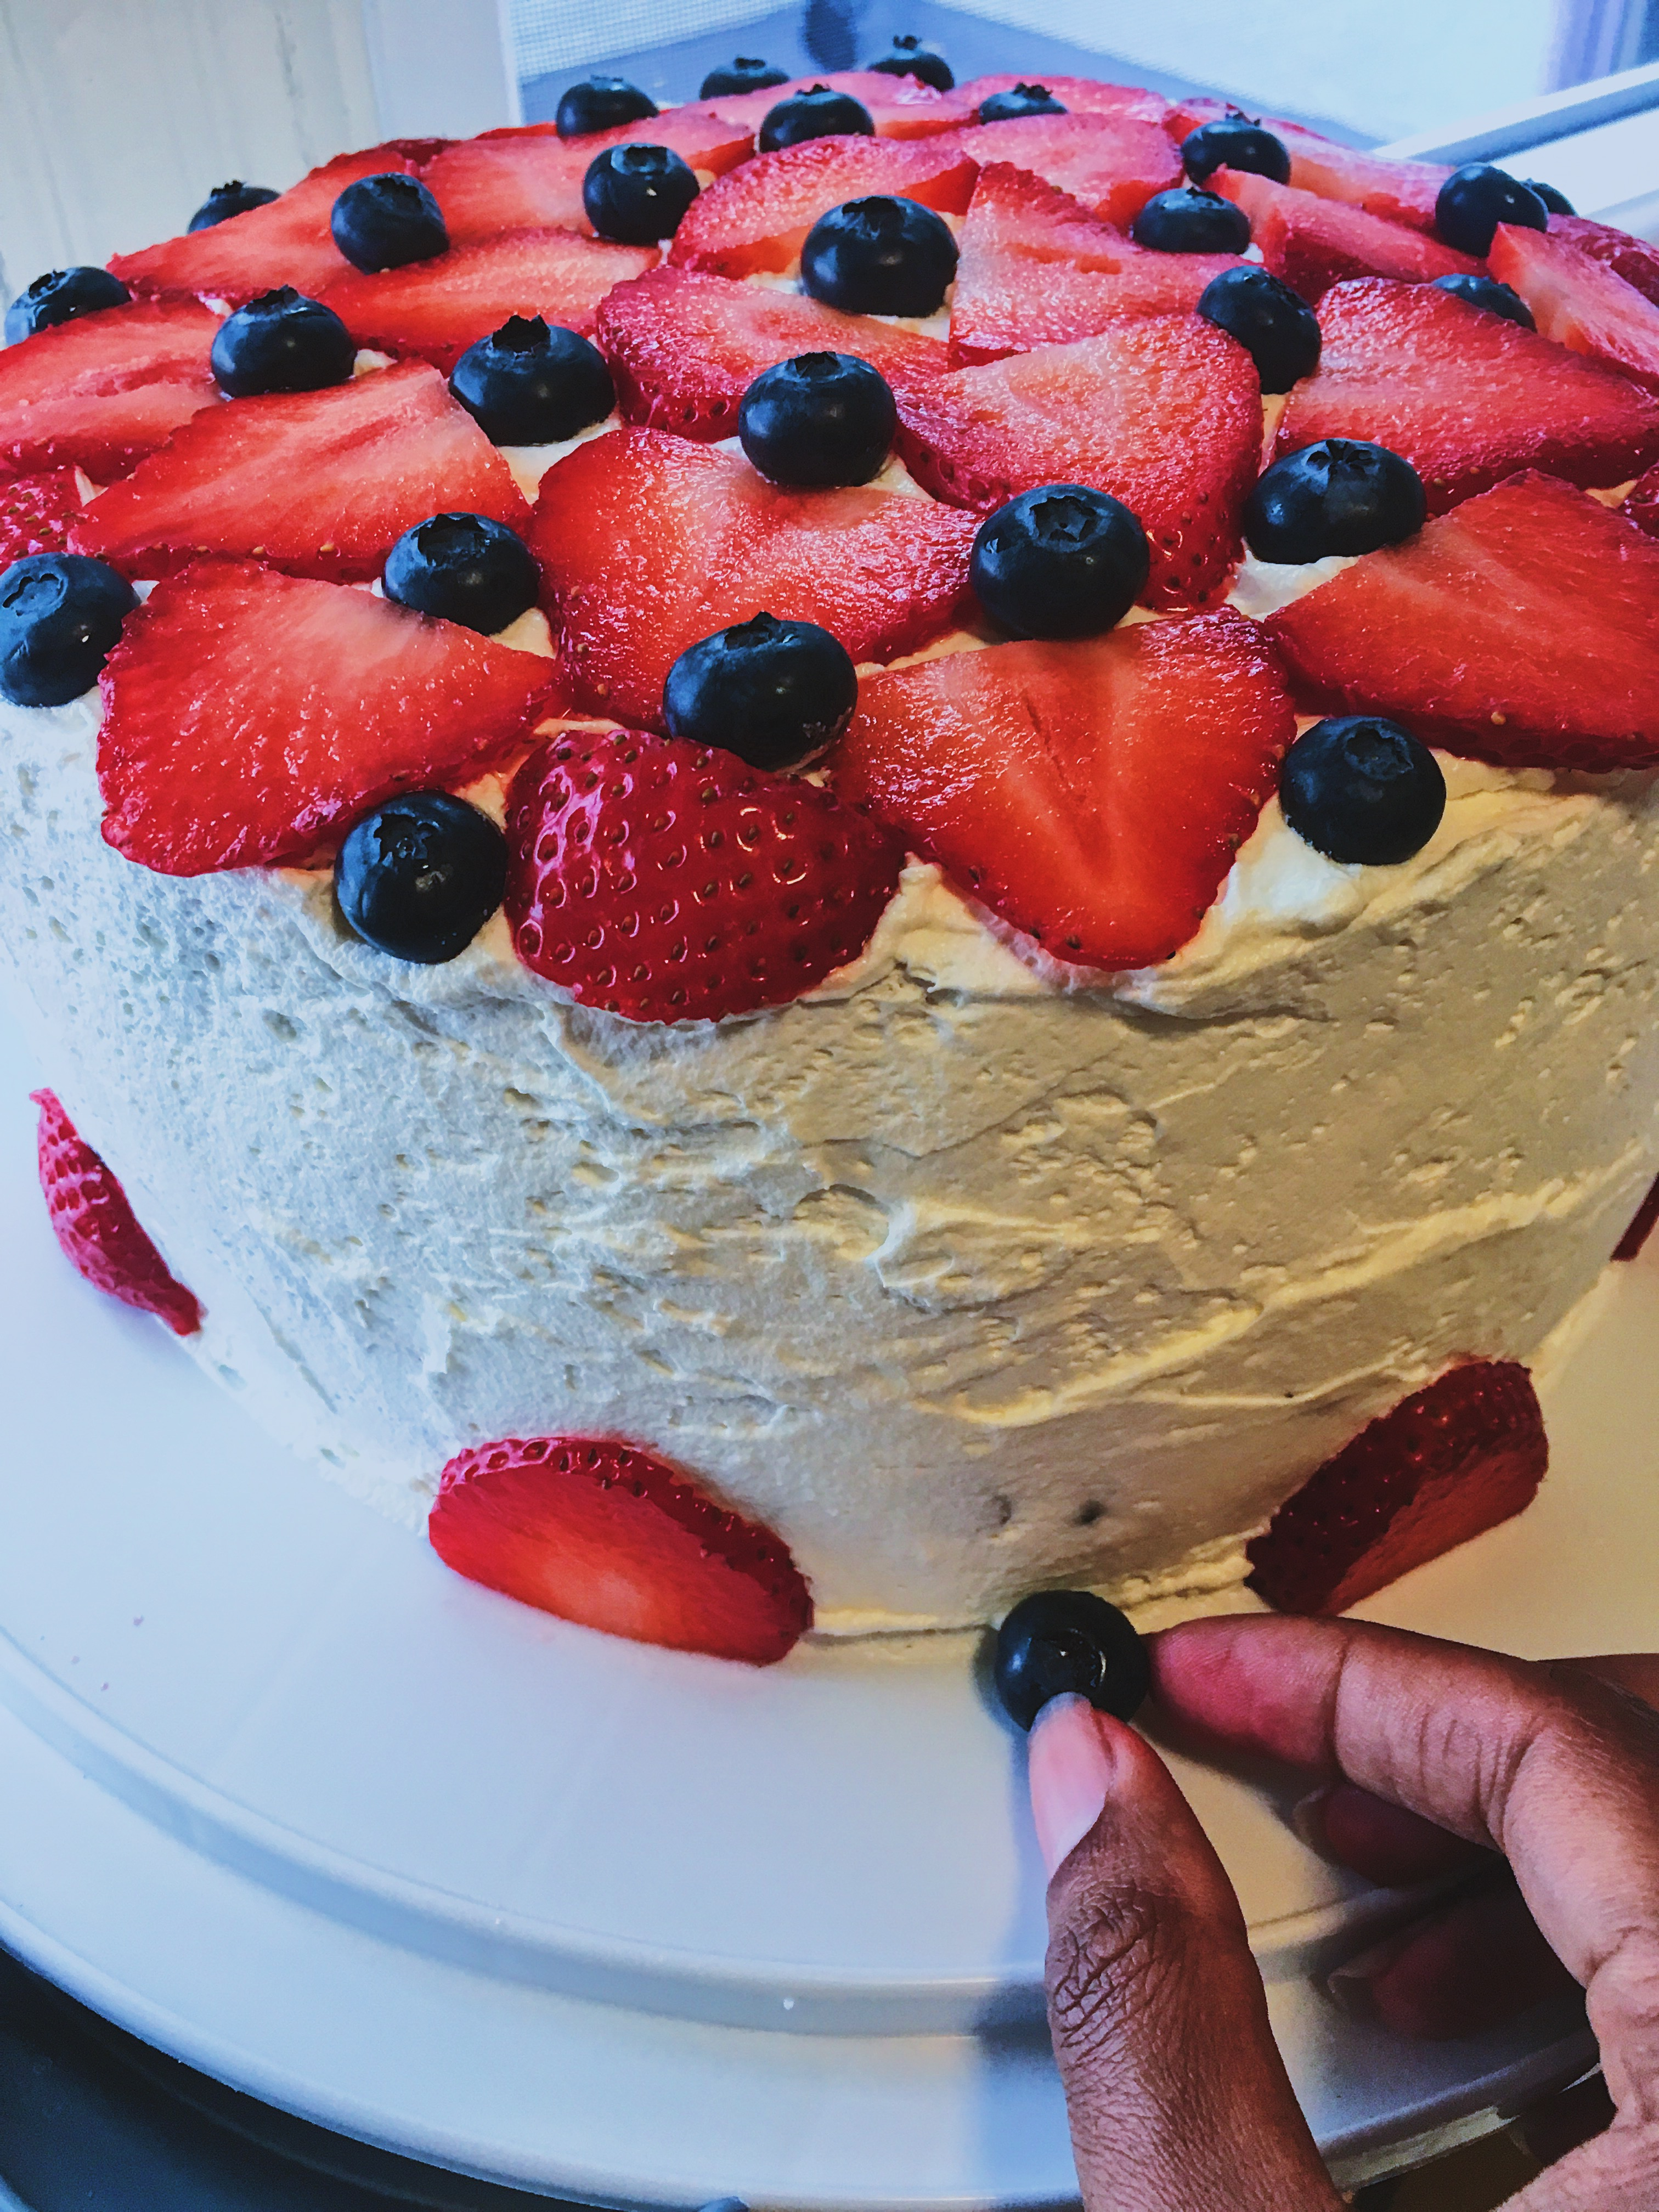 4th of july cake recipe-blueberry-strawberry-cake ideas-cool whip